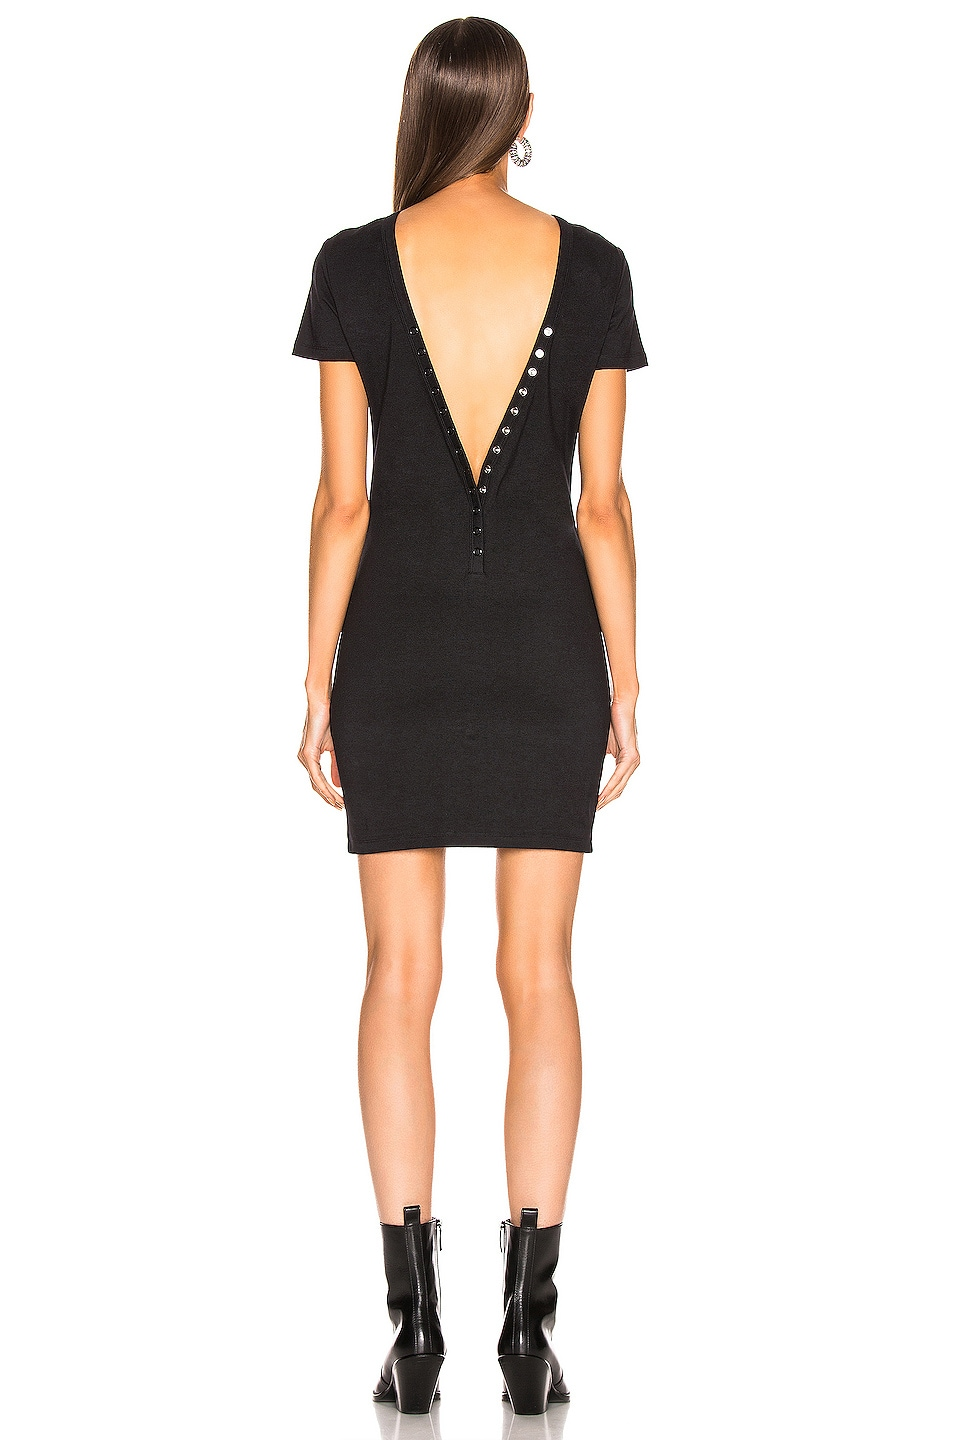 Image 5 of T by Alexander Wang Snaps Dress in Black